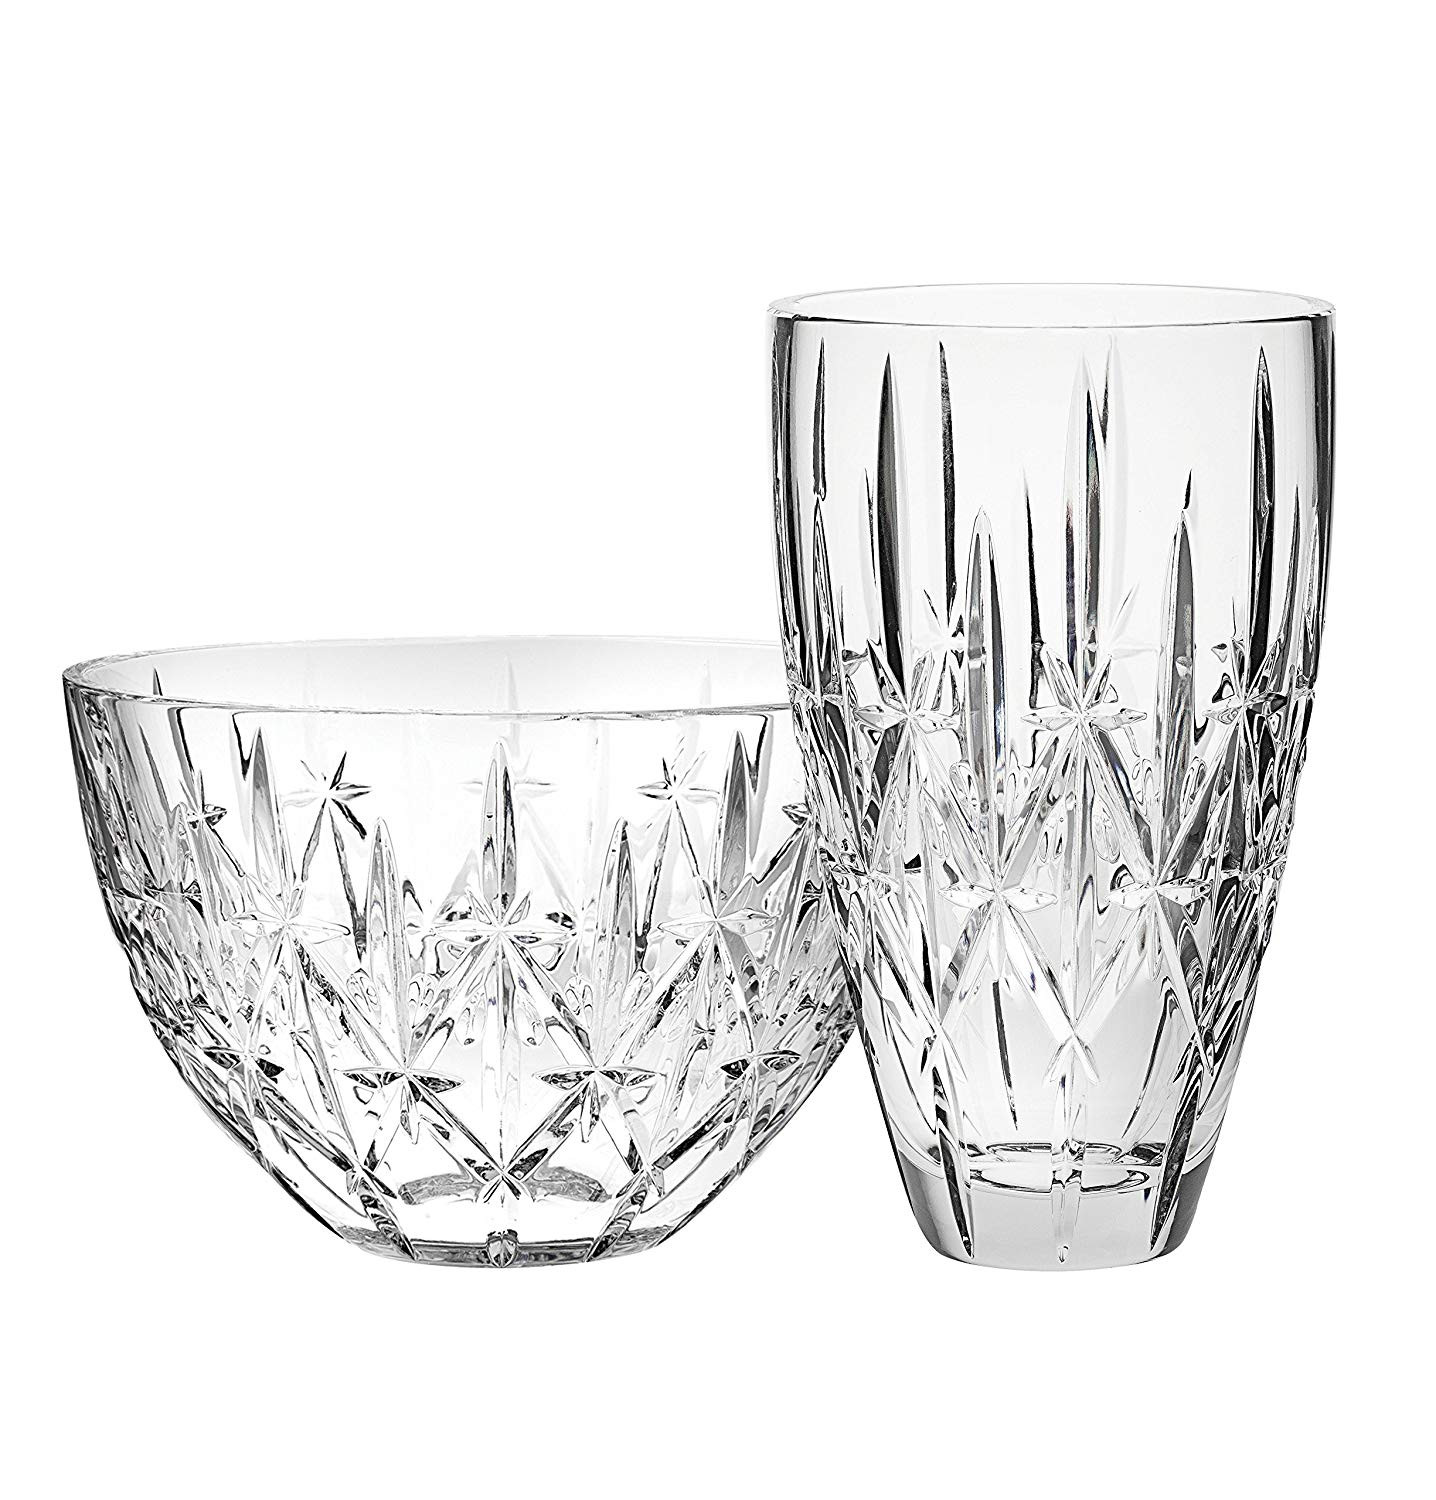 waterford lismore 8 flared vase of amazon com marquis by waterford sparkle bowl 9 home kitchen throughout 91ze4xzhccl sl1500